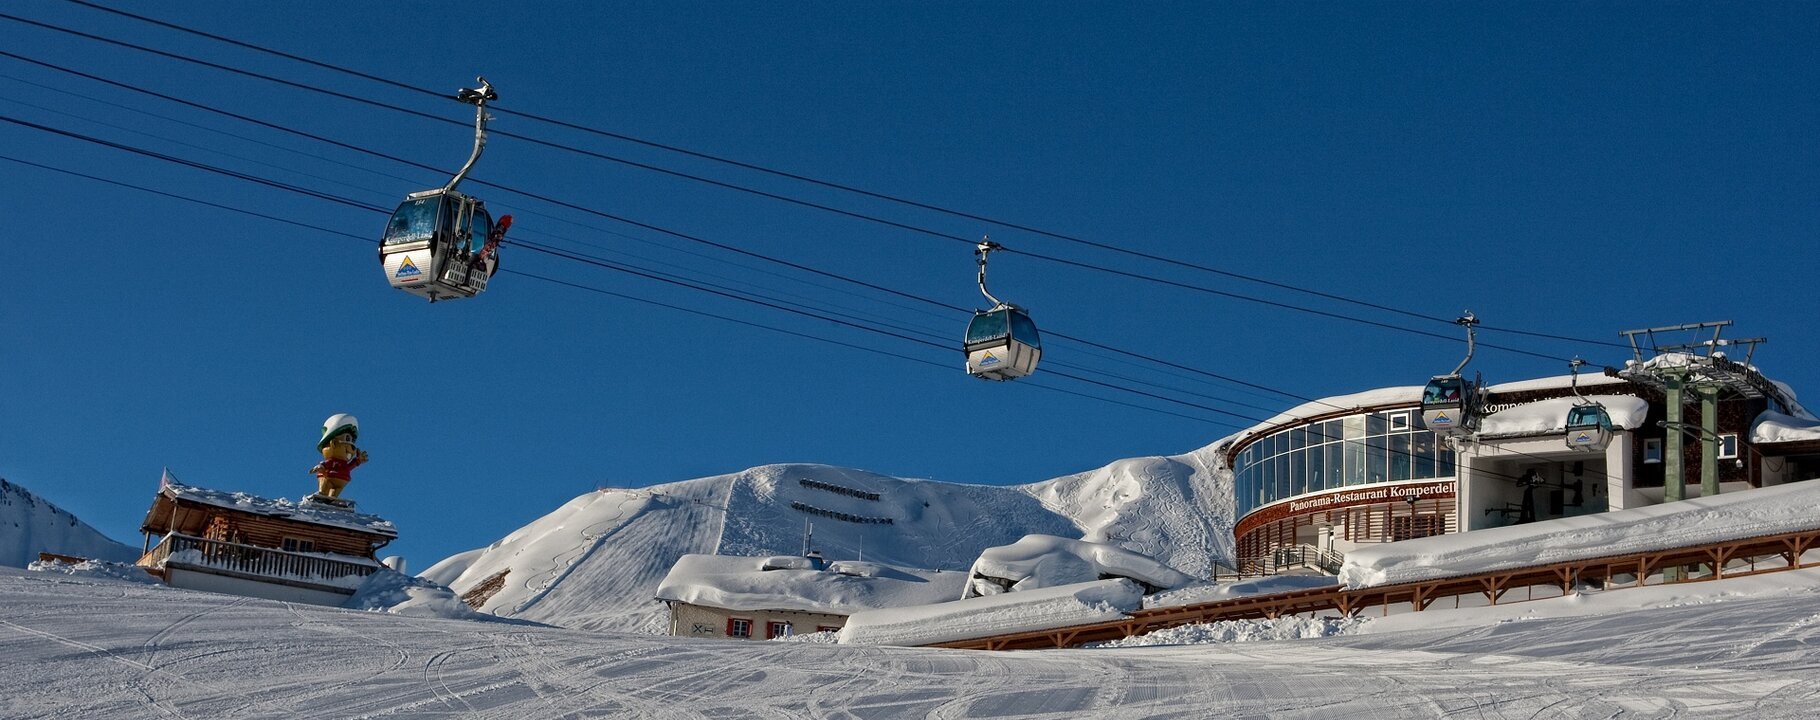 Komperdellbahn cable car Serfaus and the Komperdell Panoramic Restaurant | © Serfaus-Fiss-Ladis/Tirol